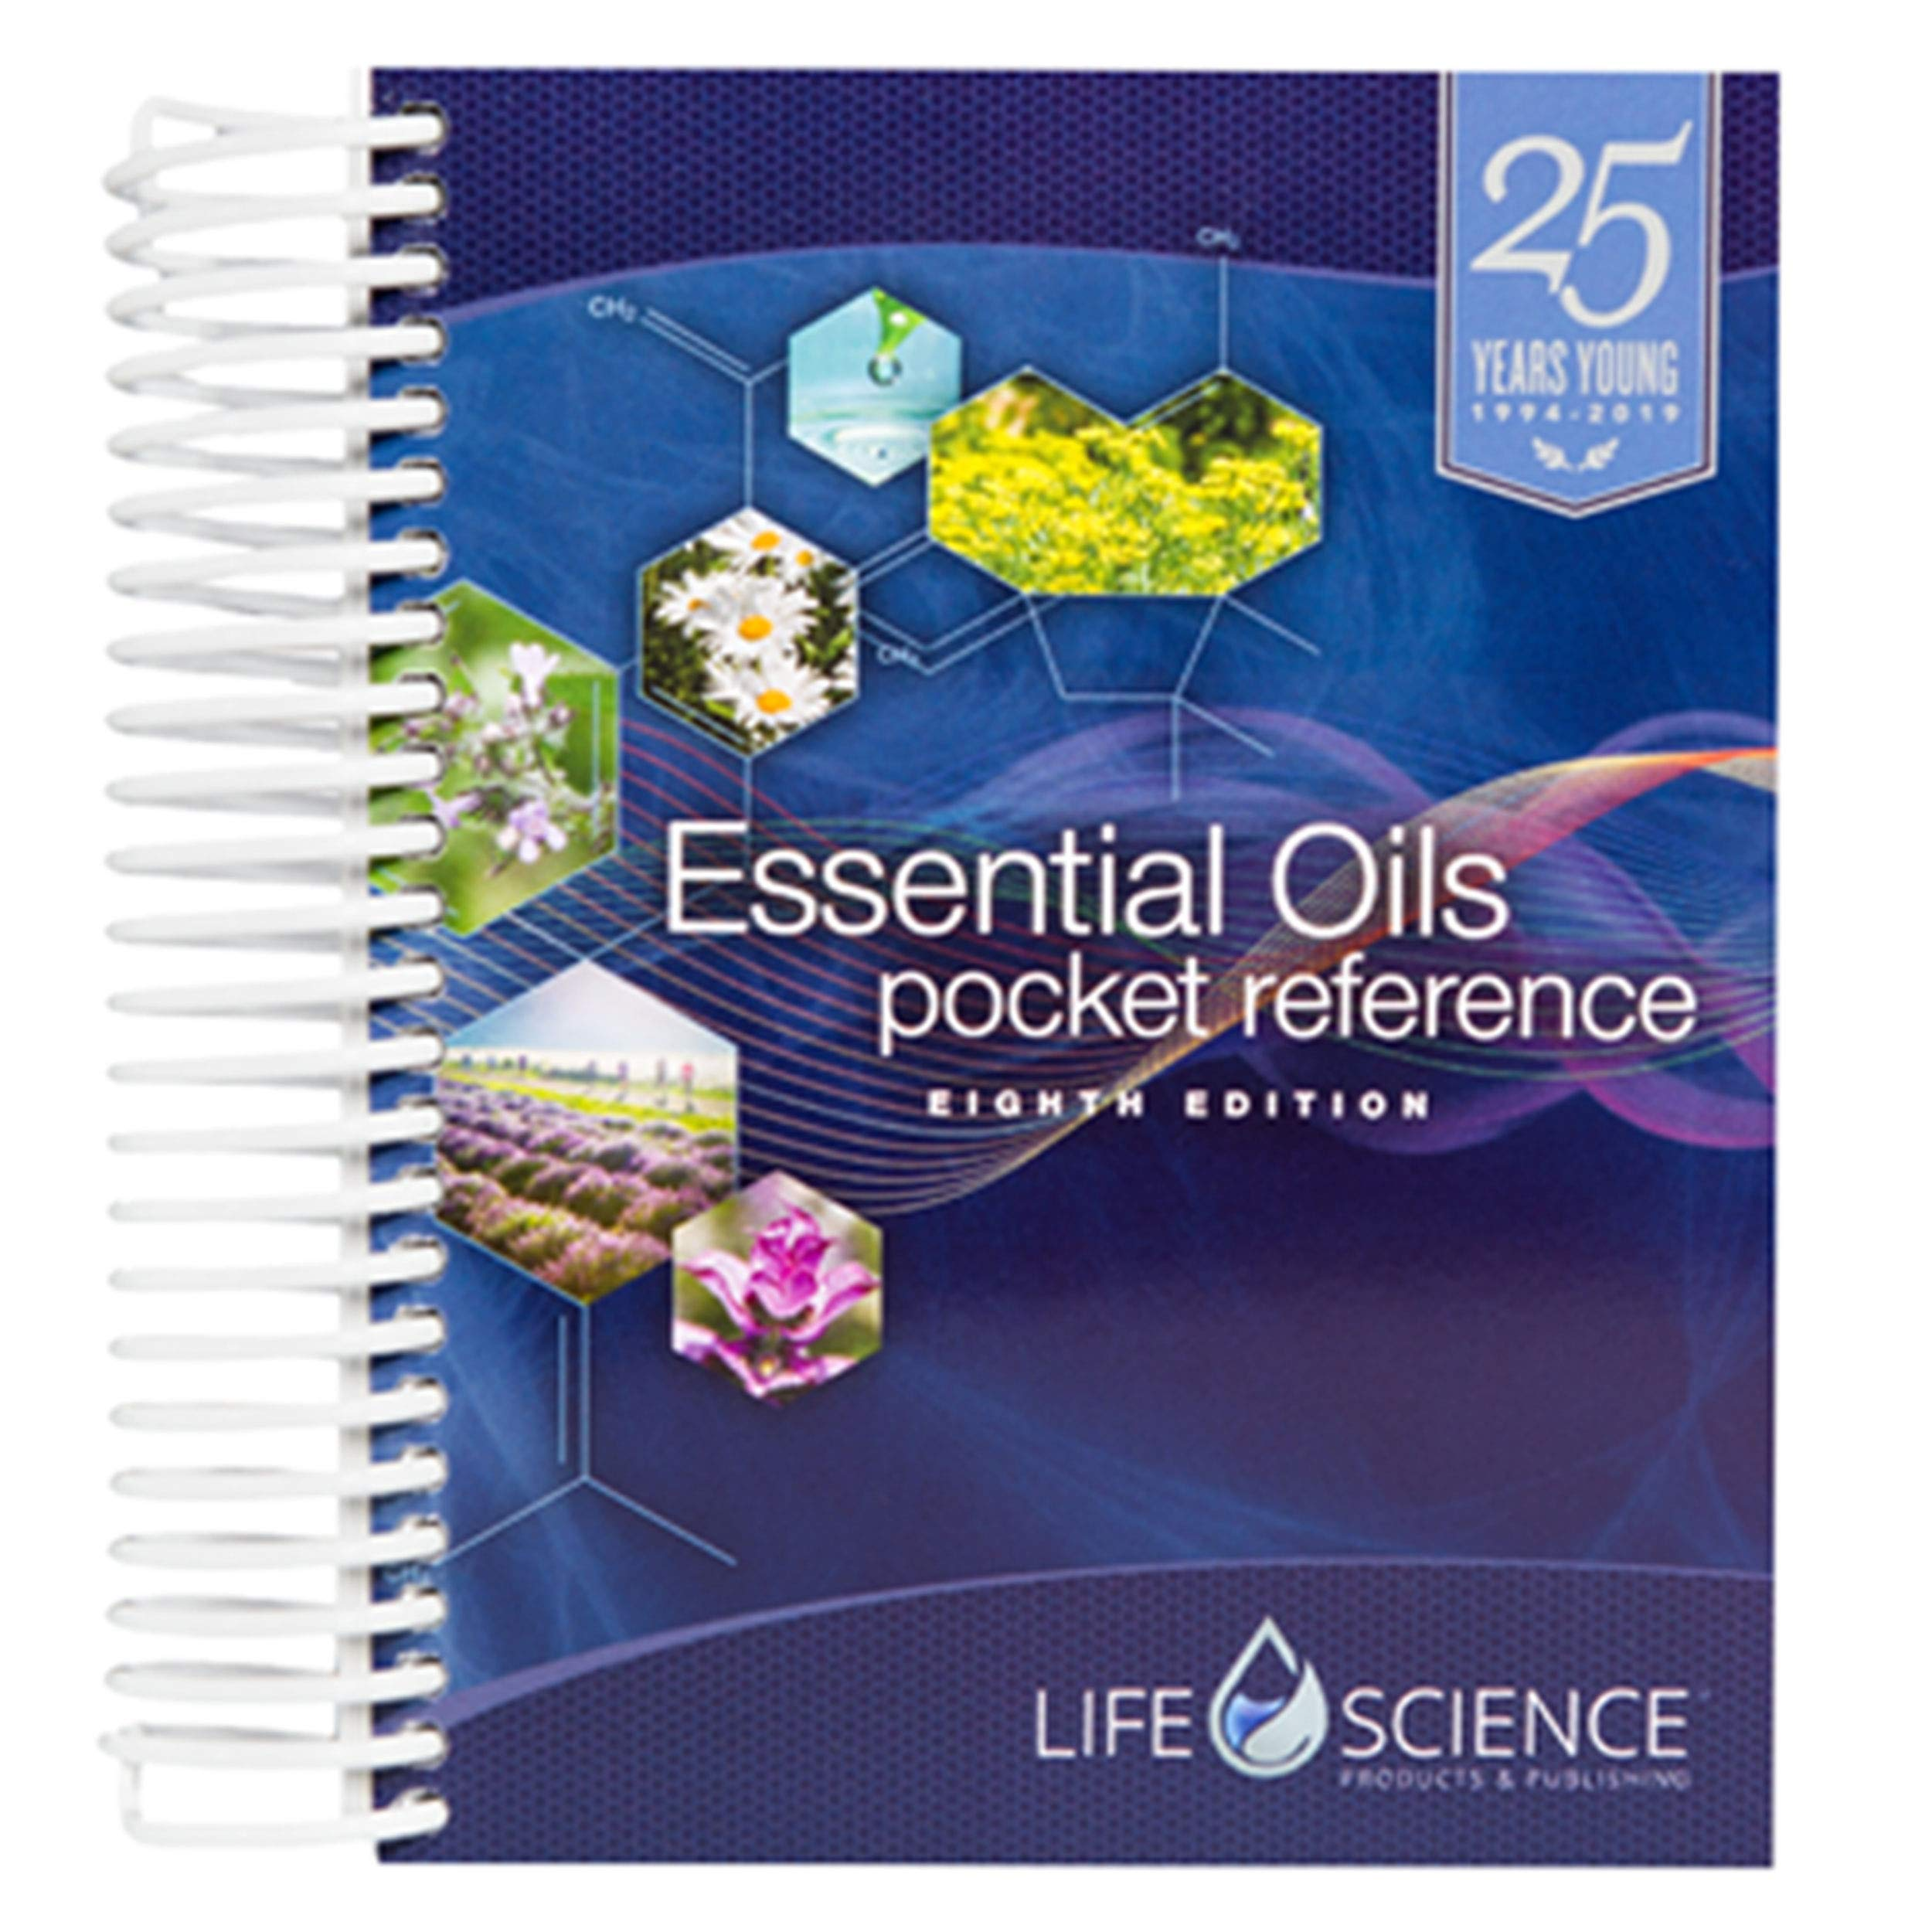 Essential Oils Pocket Reference 8th product image